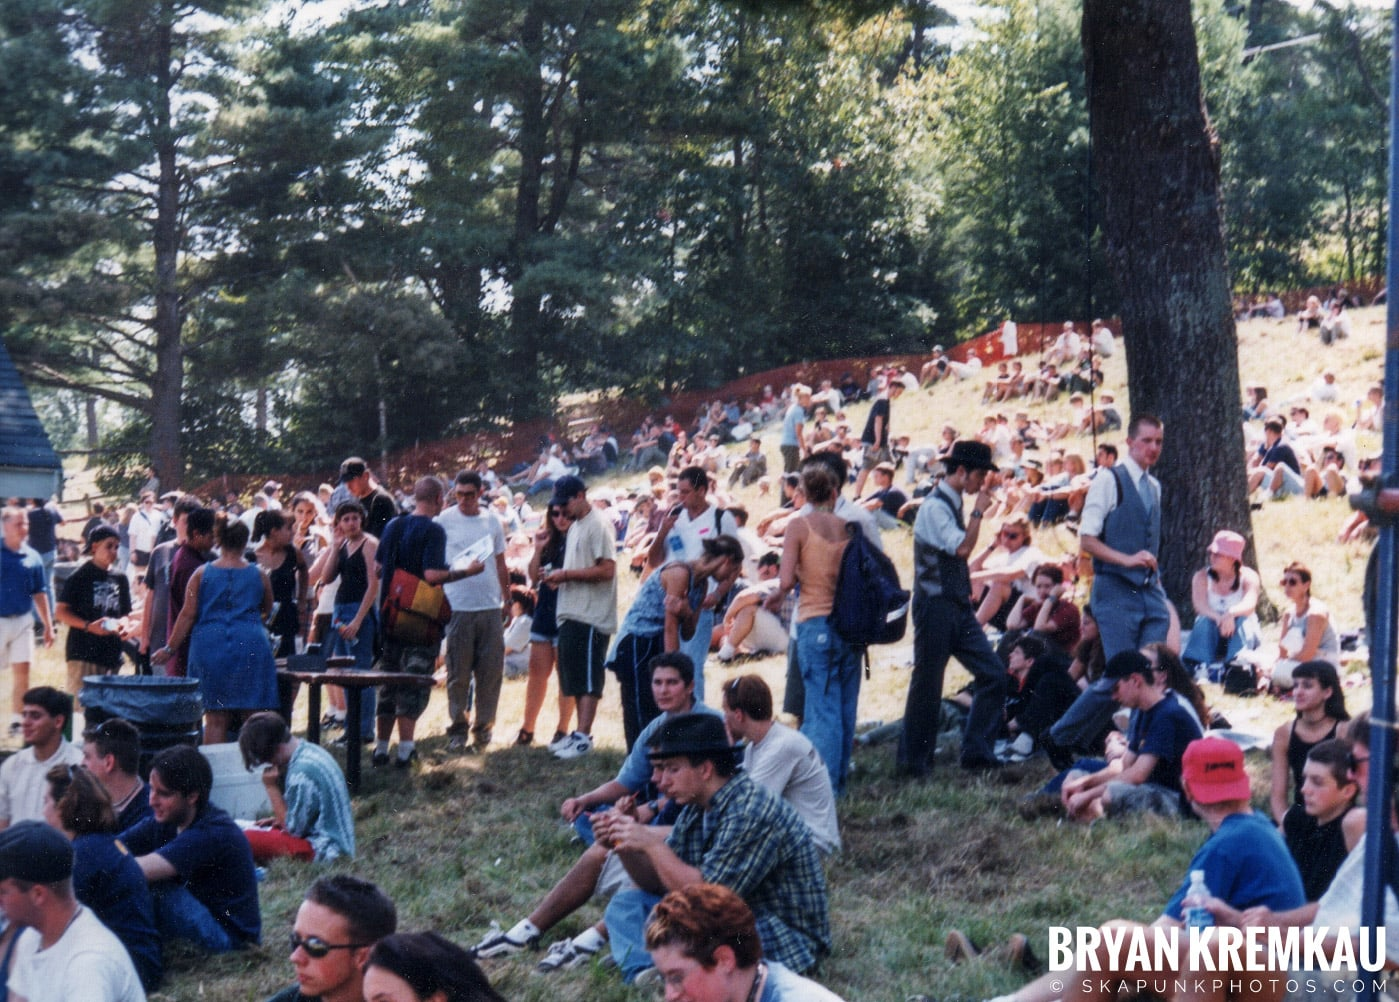 Crowd Shots @ New England Ska Fest 98, Westford, MA - 8.22.98 (8)